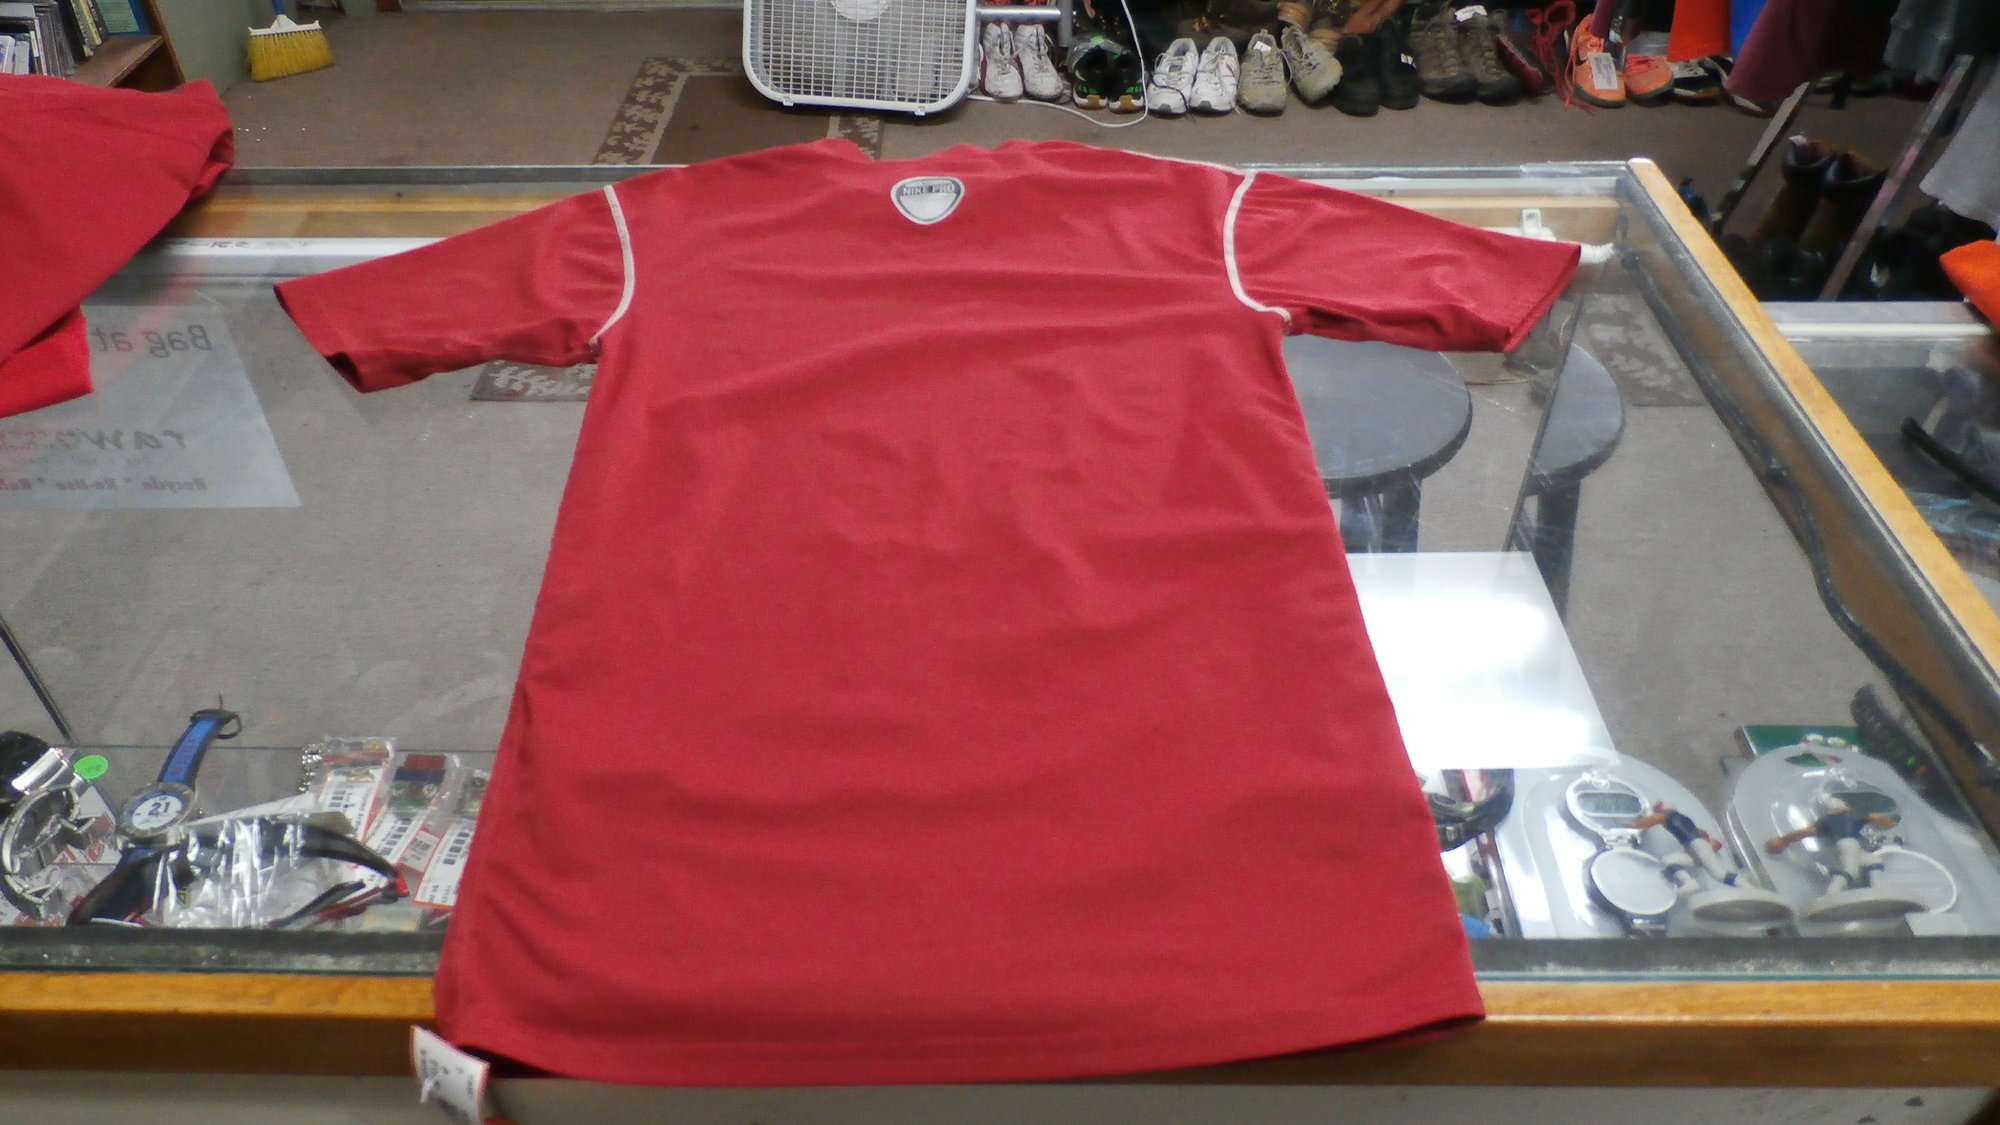 83e08fe2 Nike Pro Fit Dri Men's Compression Short Sleeve Shirt Size Small #14497<br /